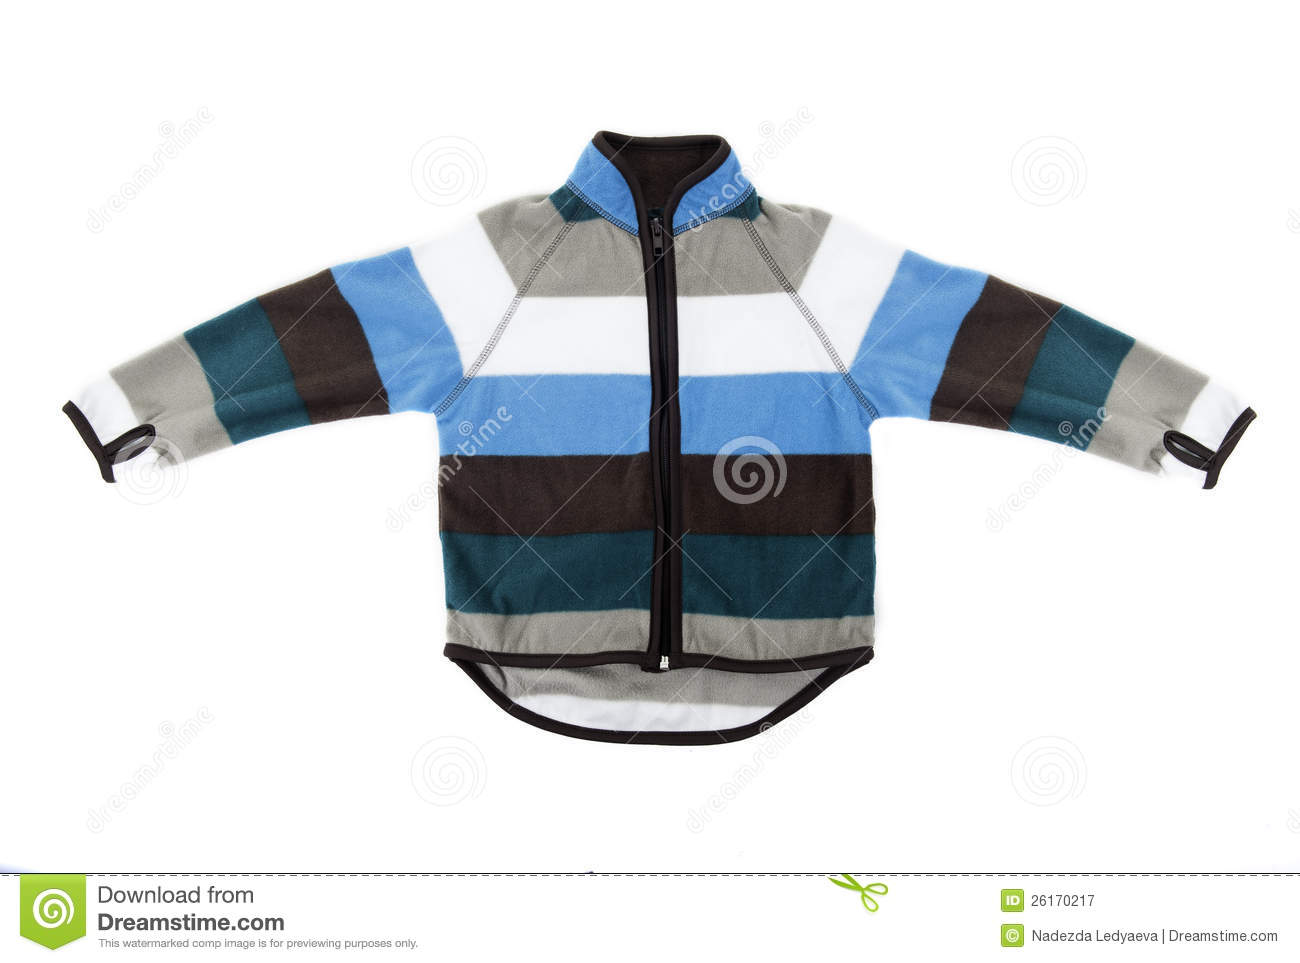 c064fb4326bd Sweater stock image. Image of single